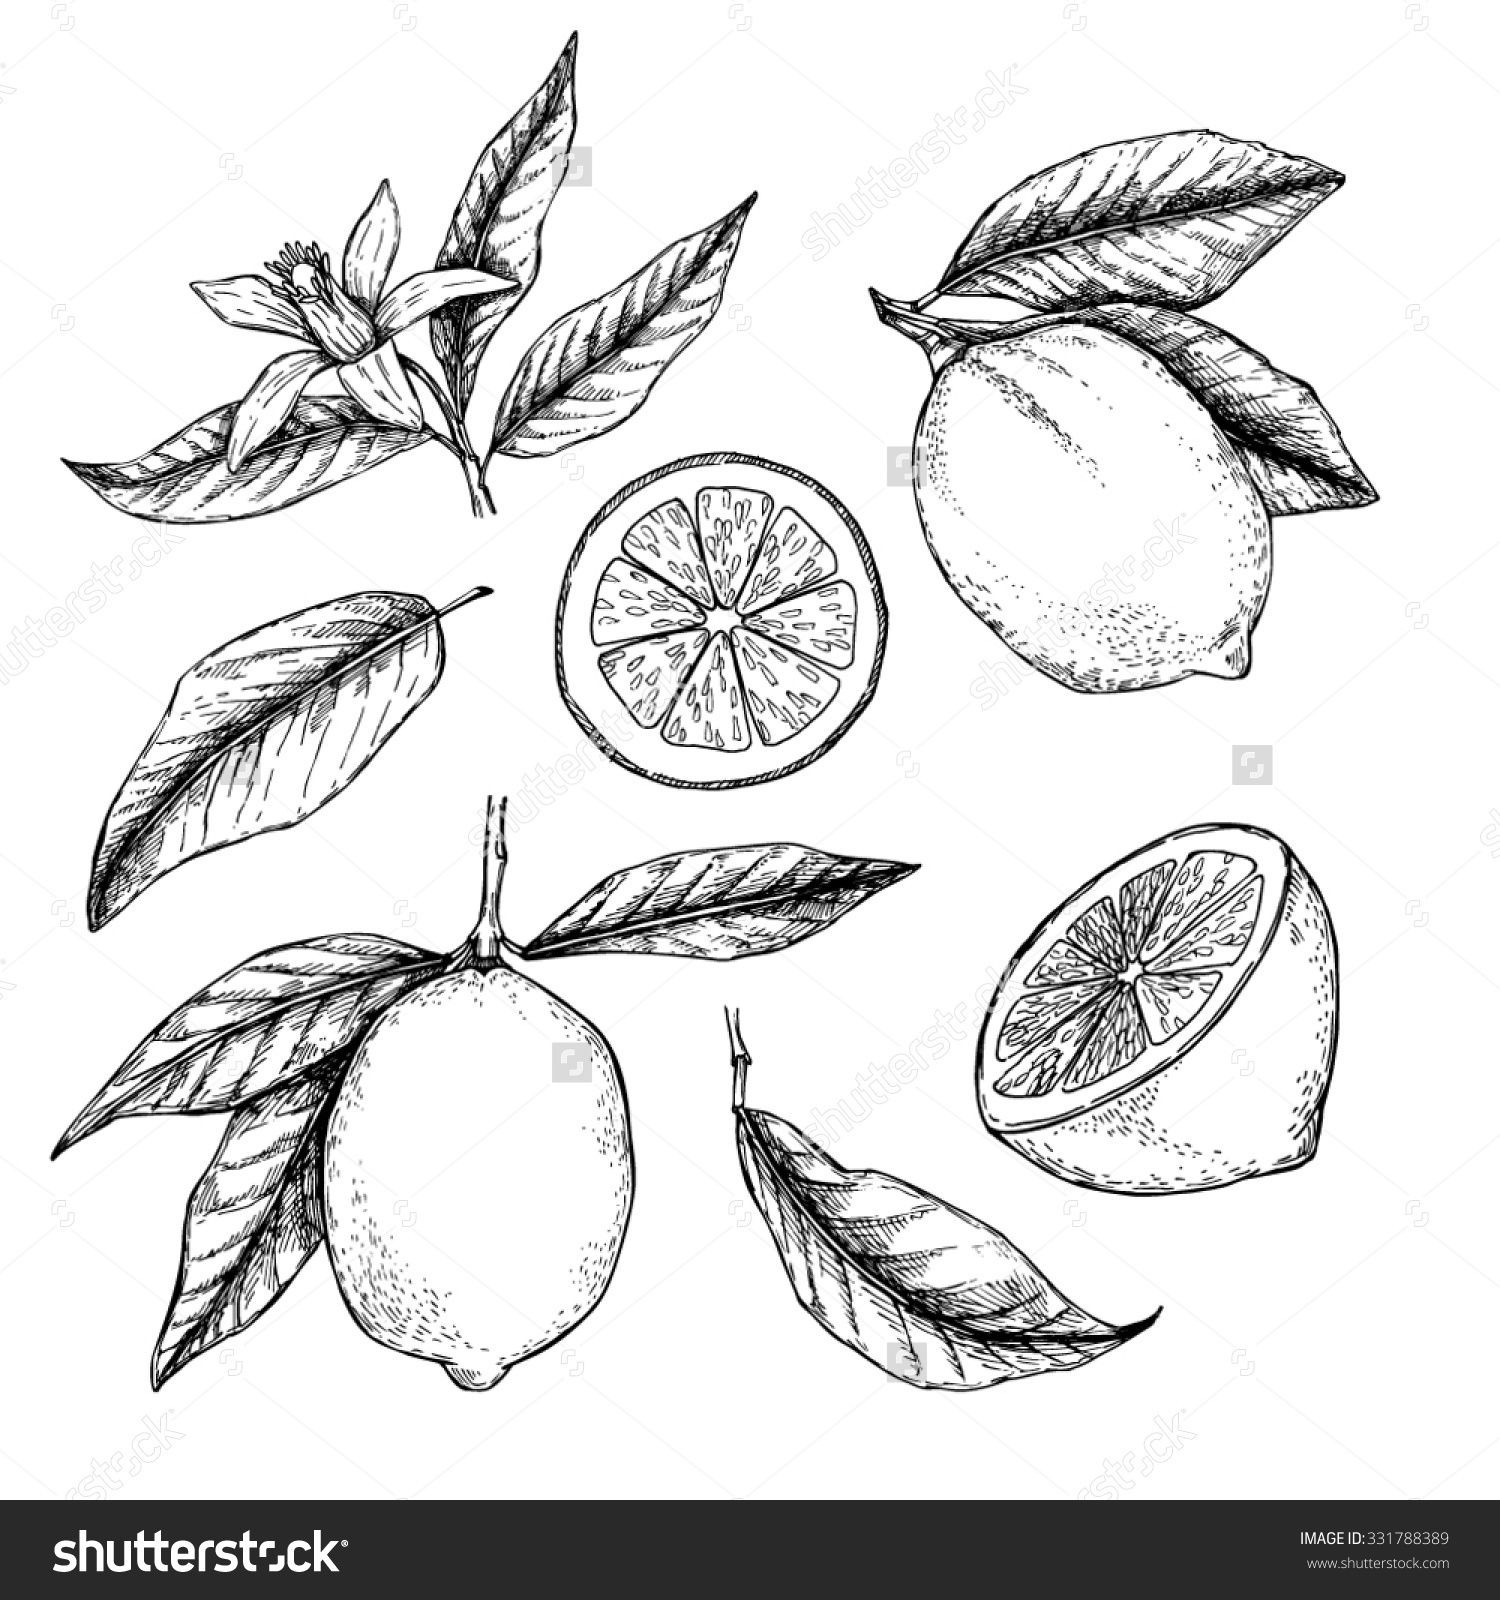 Hand drawn vector illustration Collections of Lemons Blossom plant with leaves